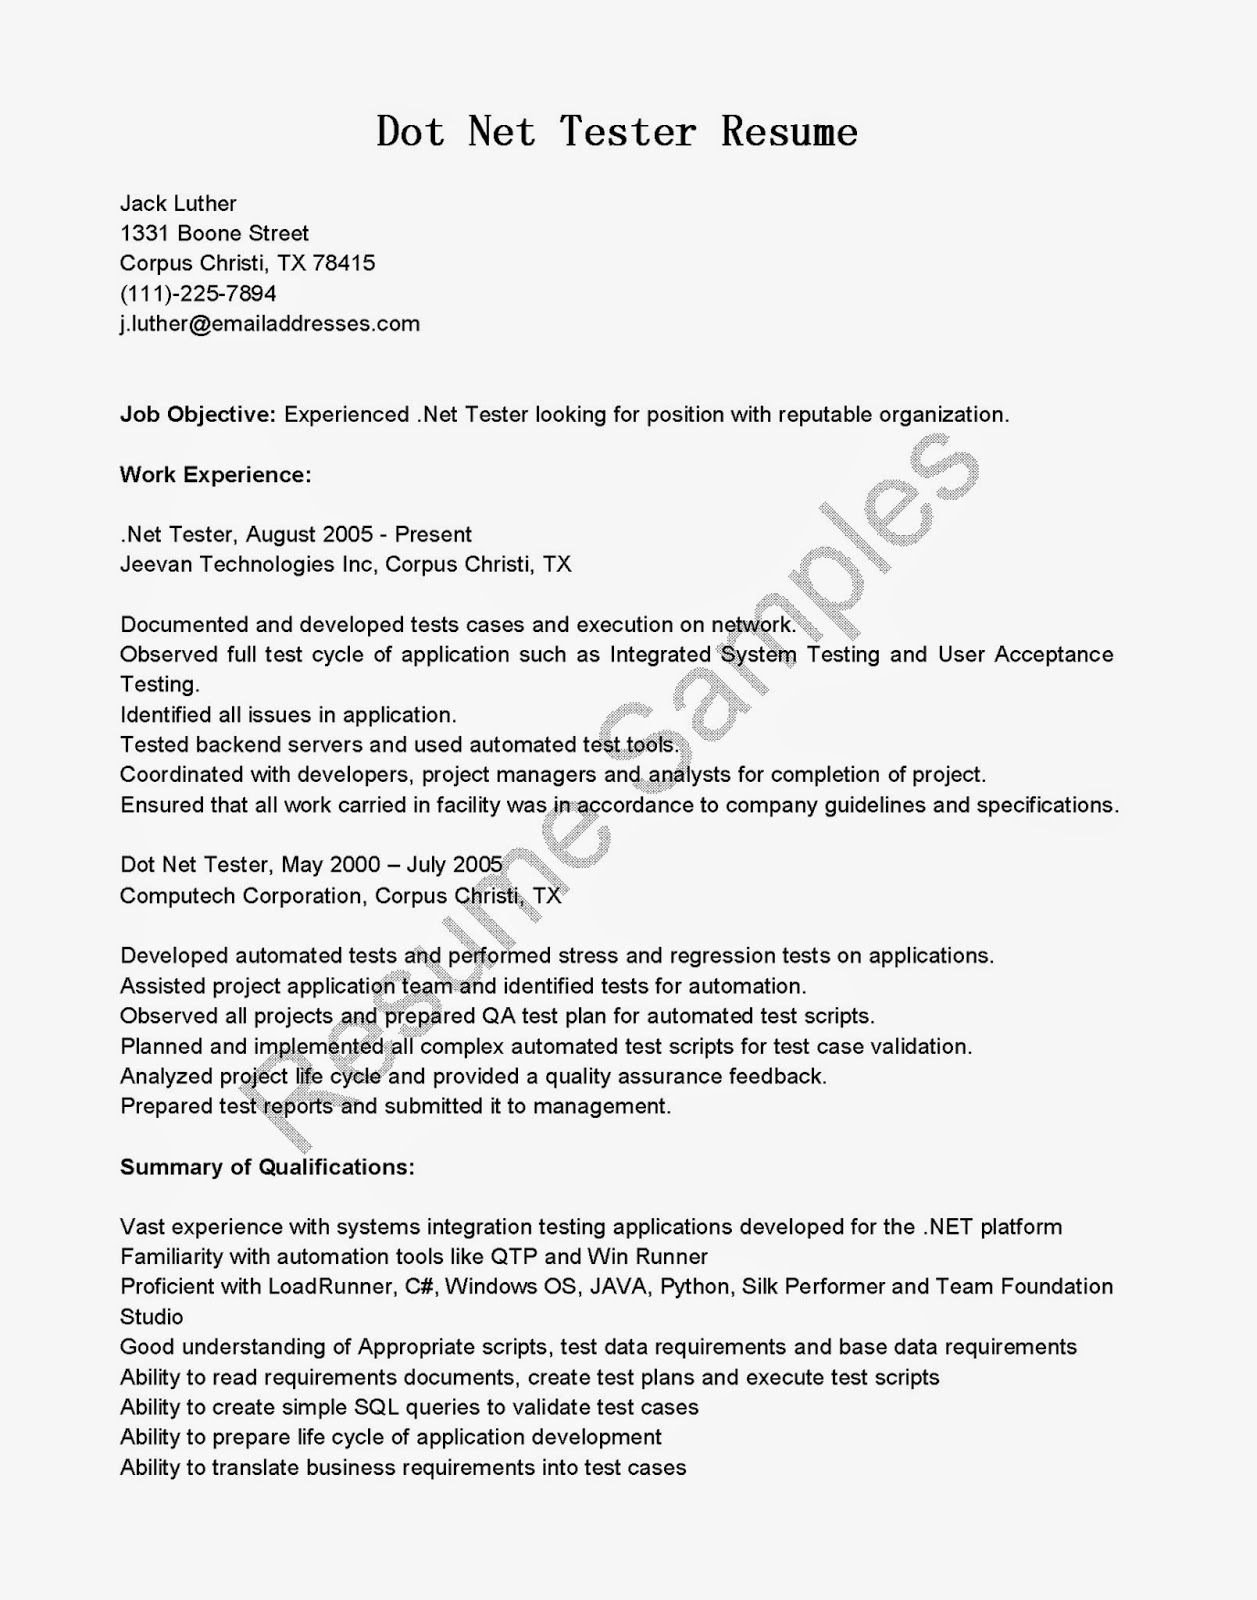 resume samples dot net tester resume